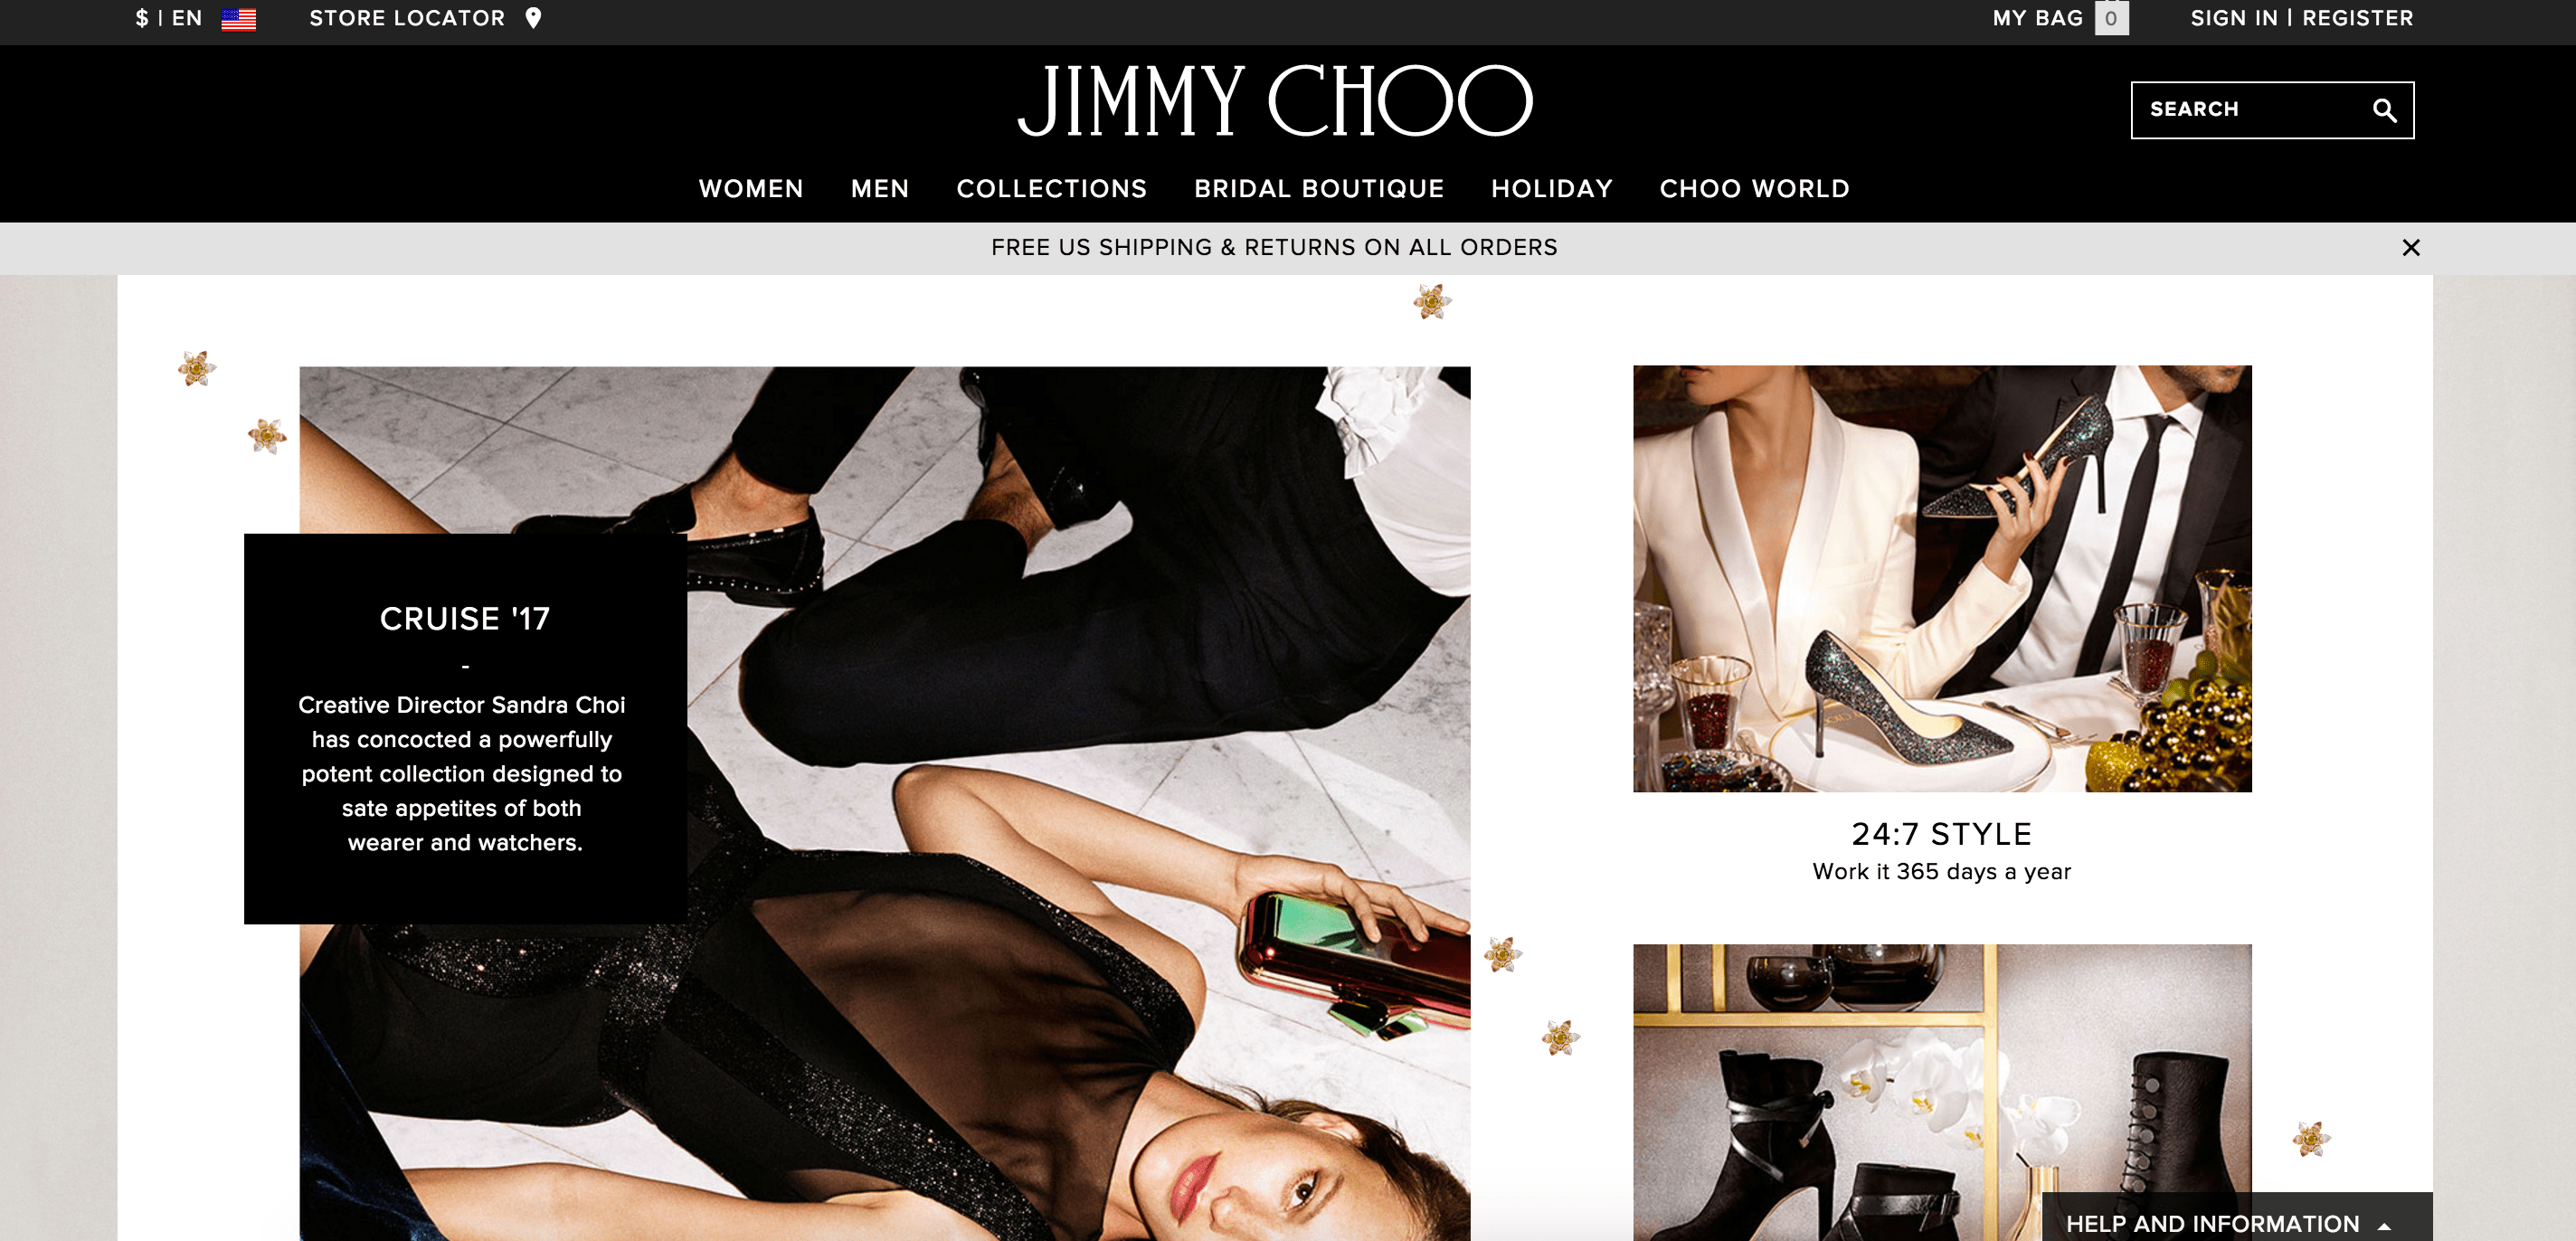 Jimmy Choo Coupons & Cash Back